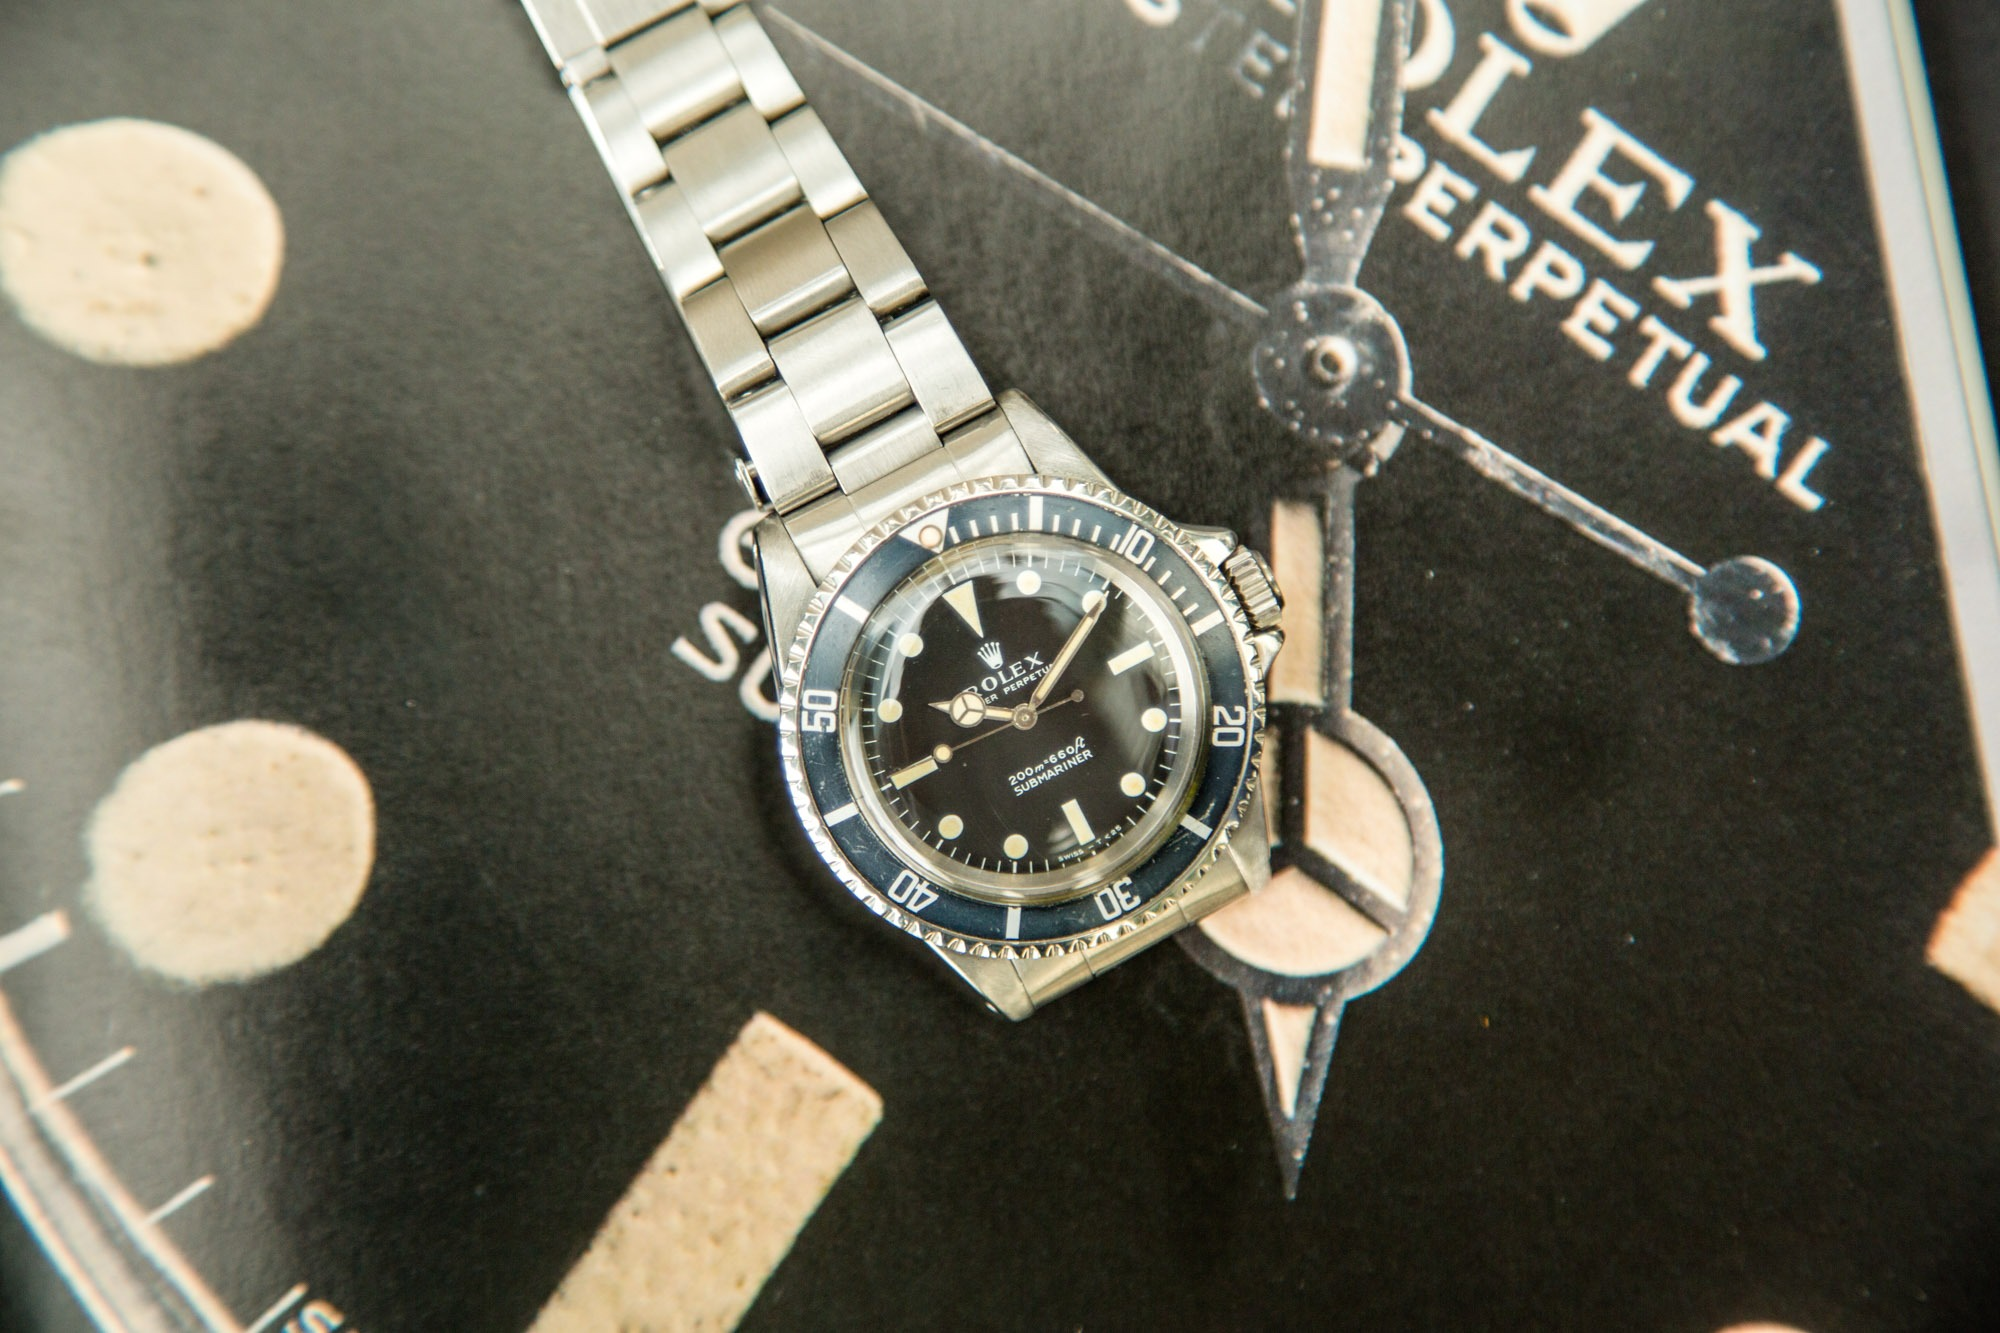 Vestiaire Collective - Montres Anciennes - Rolex 5513 Submariner